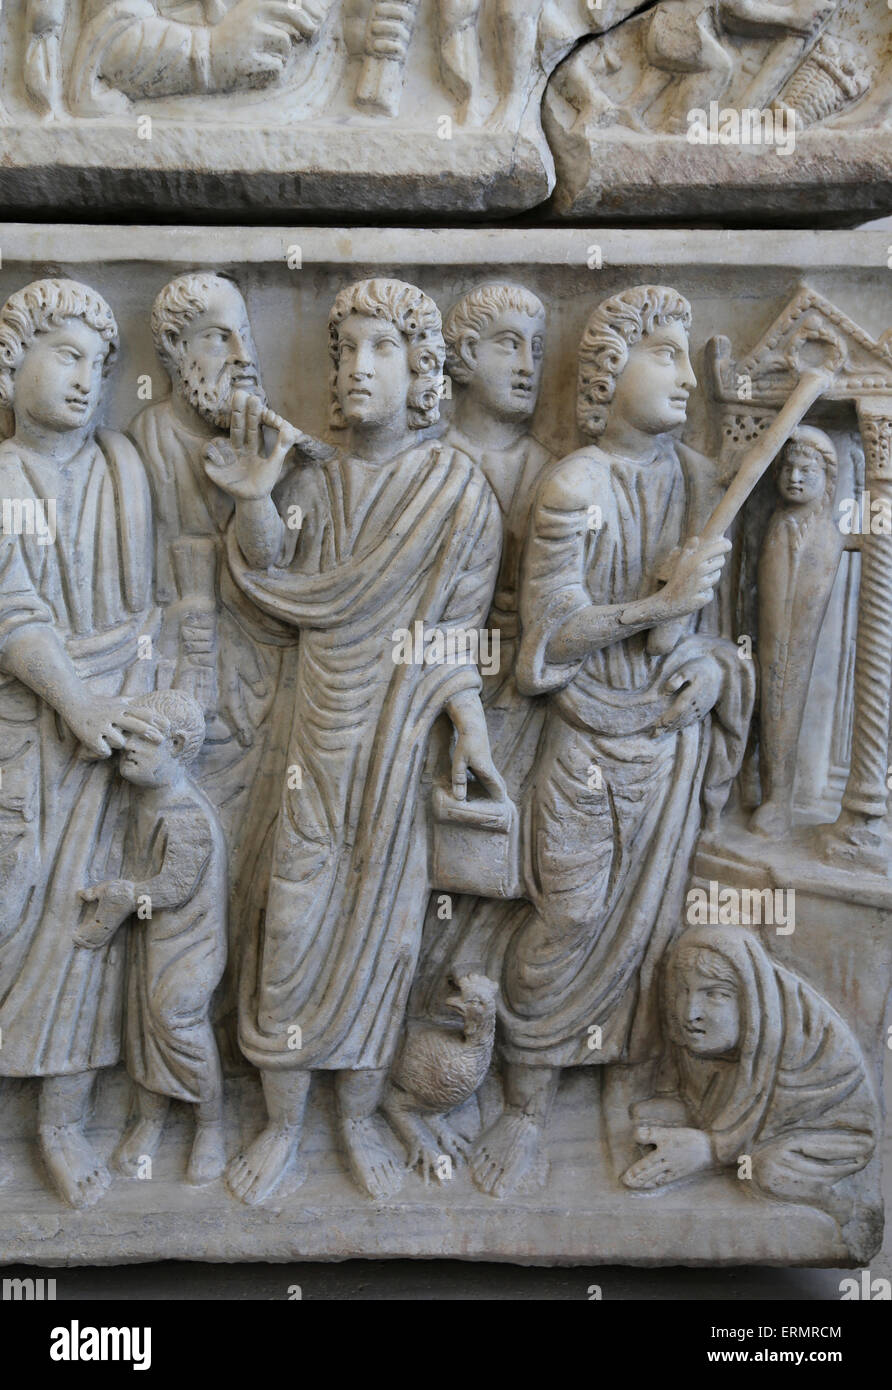 Early Christian. Roman sarcophagus of Marcus Claudianus (330-335 AD). The Curing of the blind man, the prediction - Stock Image